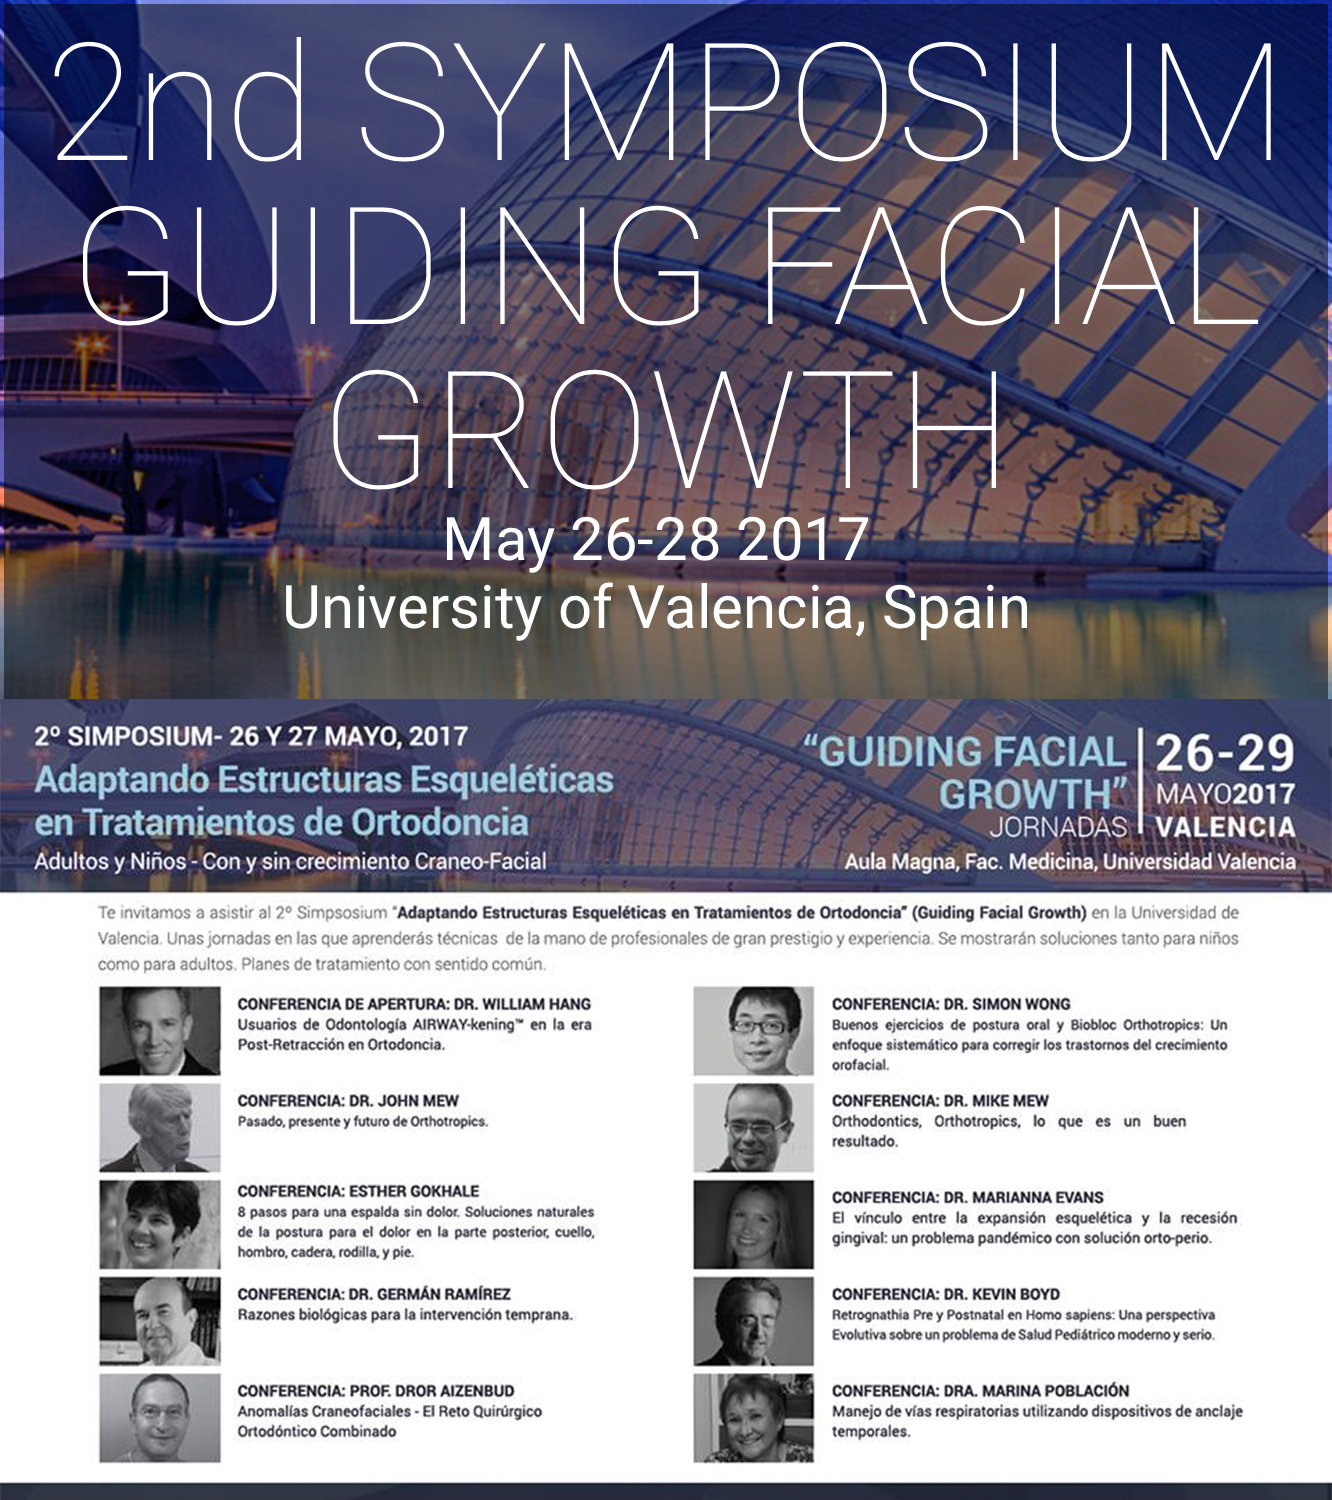 II Symposium Guiding Facial Growth